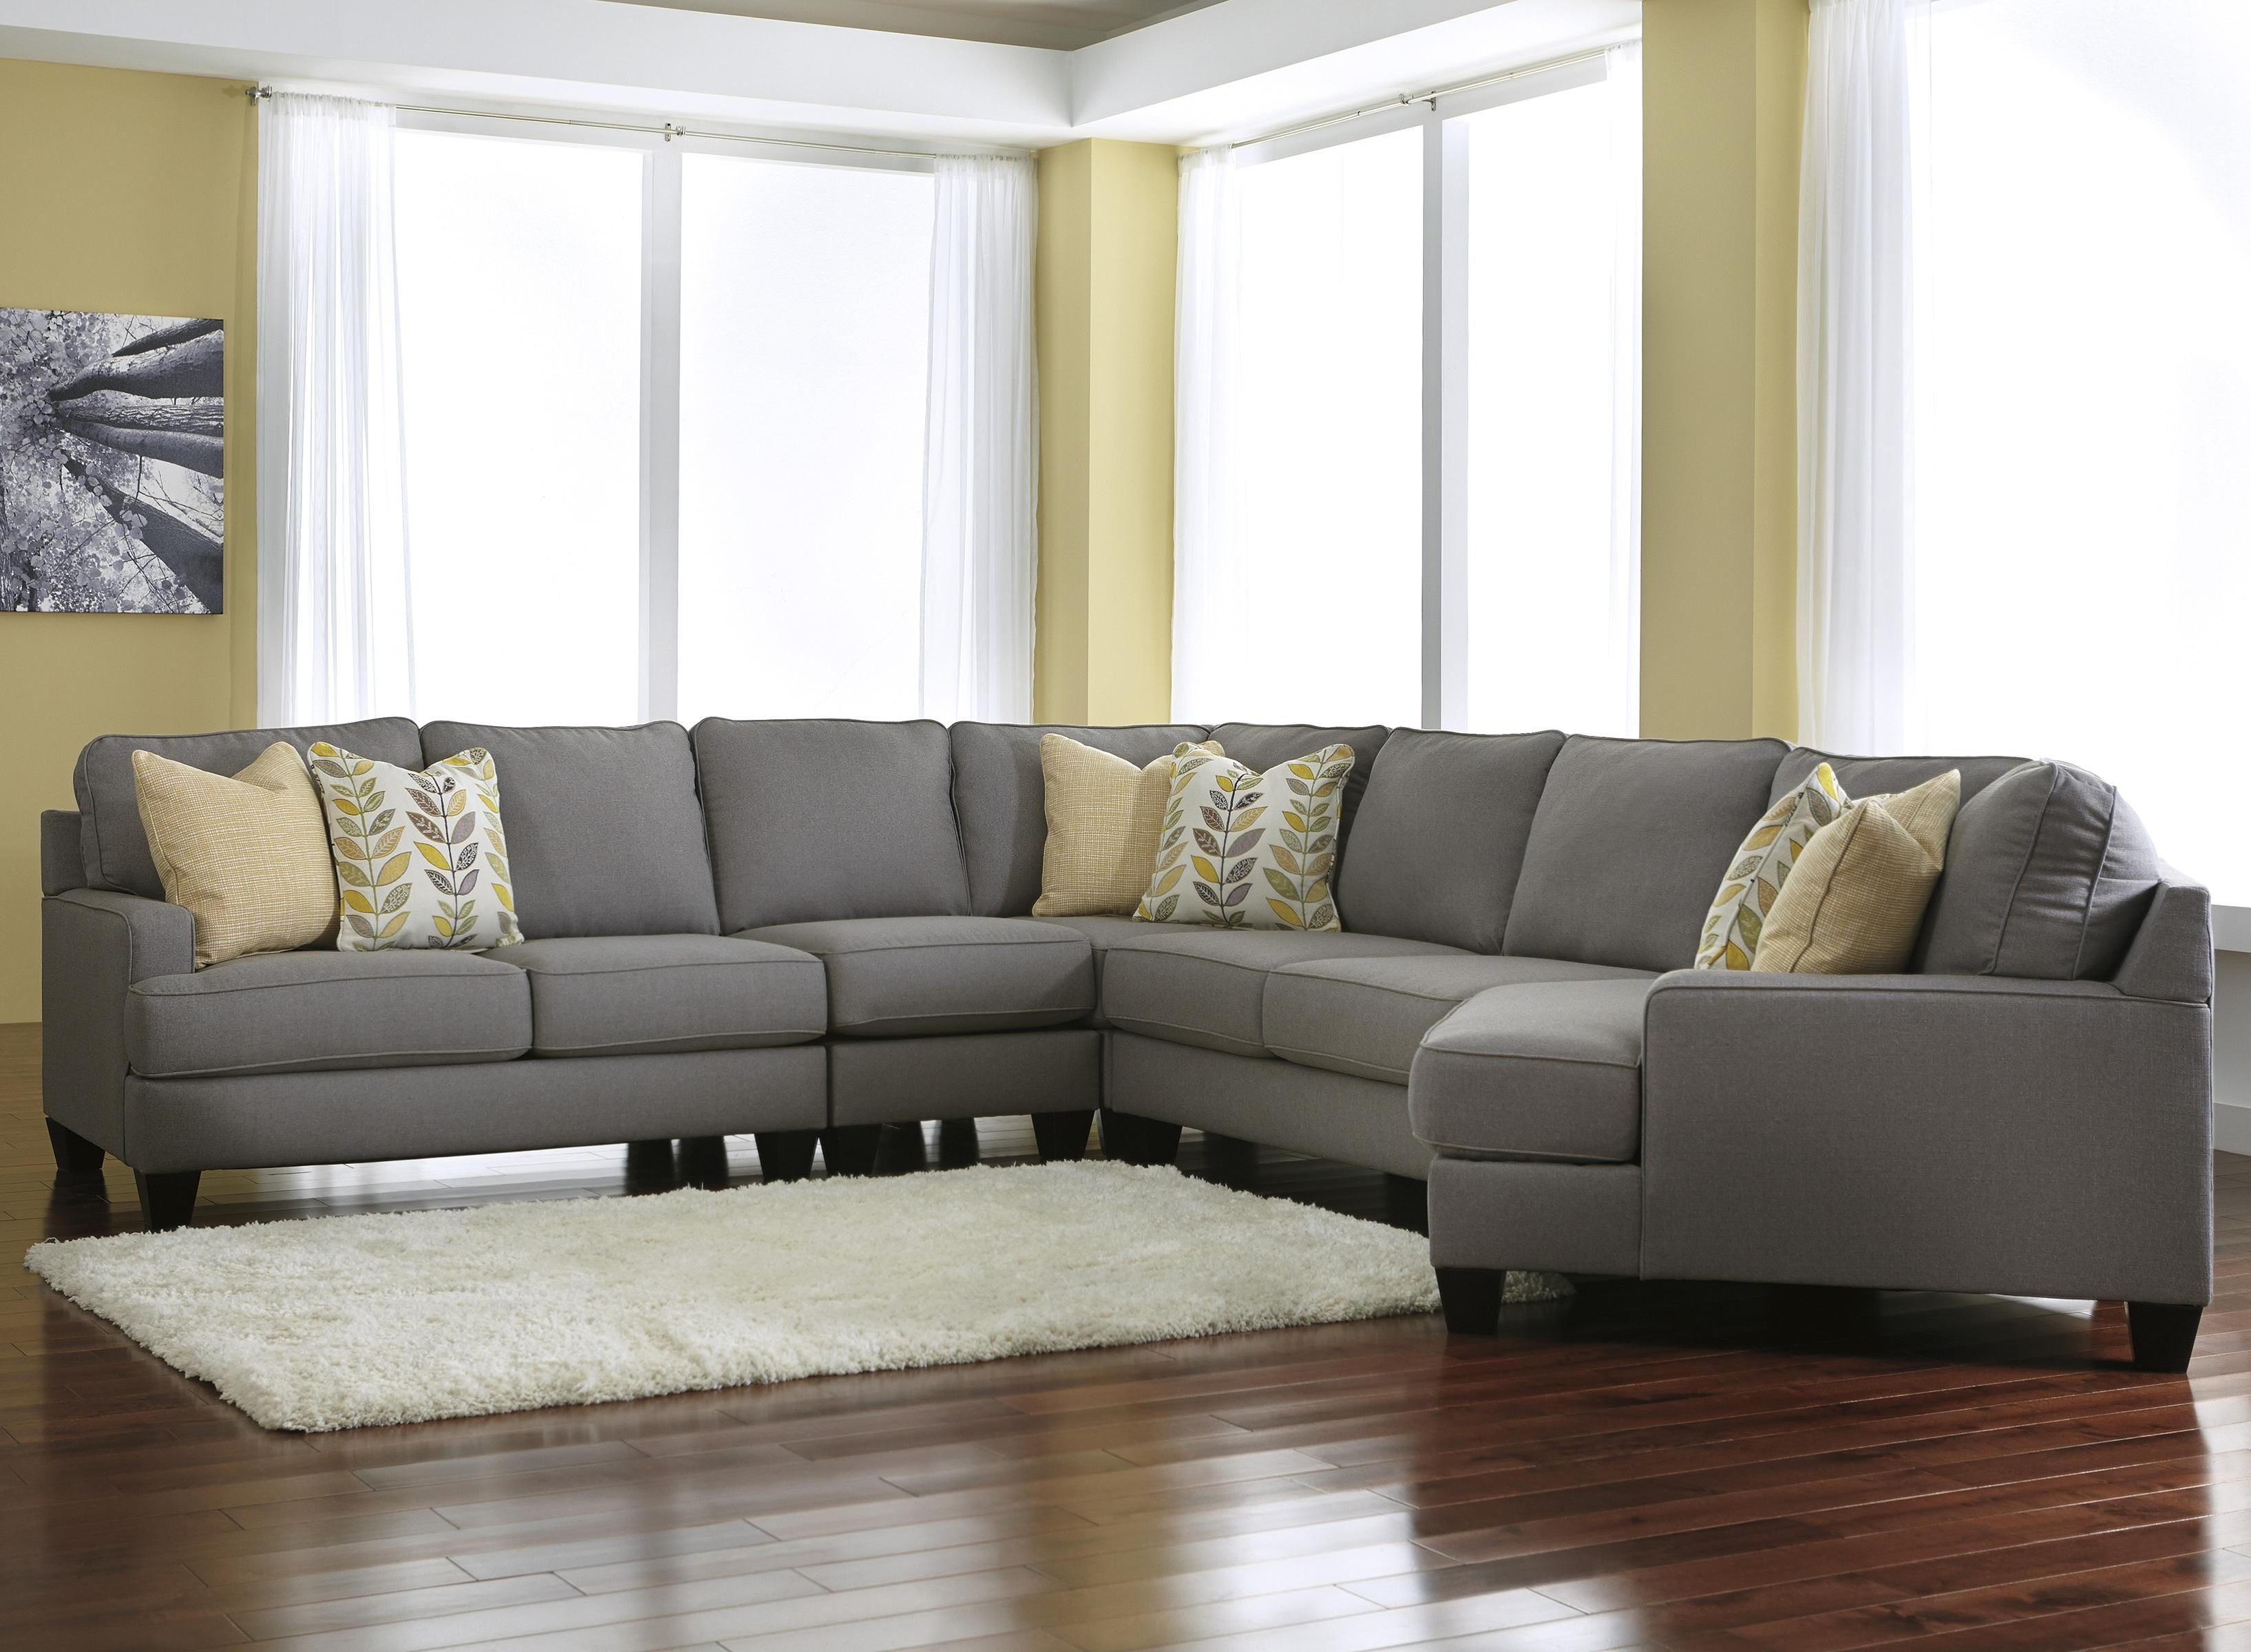 Signature Design Ashley Chamberly Alloy Modern 5 Piece With Cuddler Sectional Sofa (Image 14 of 15)